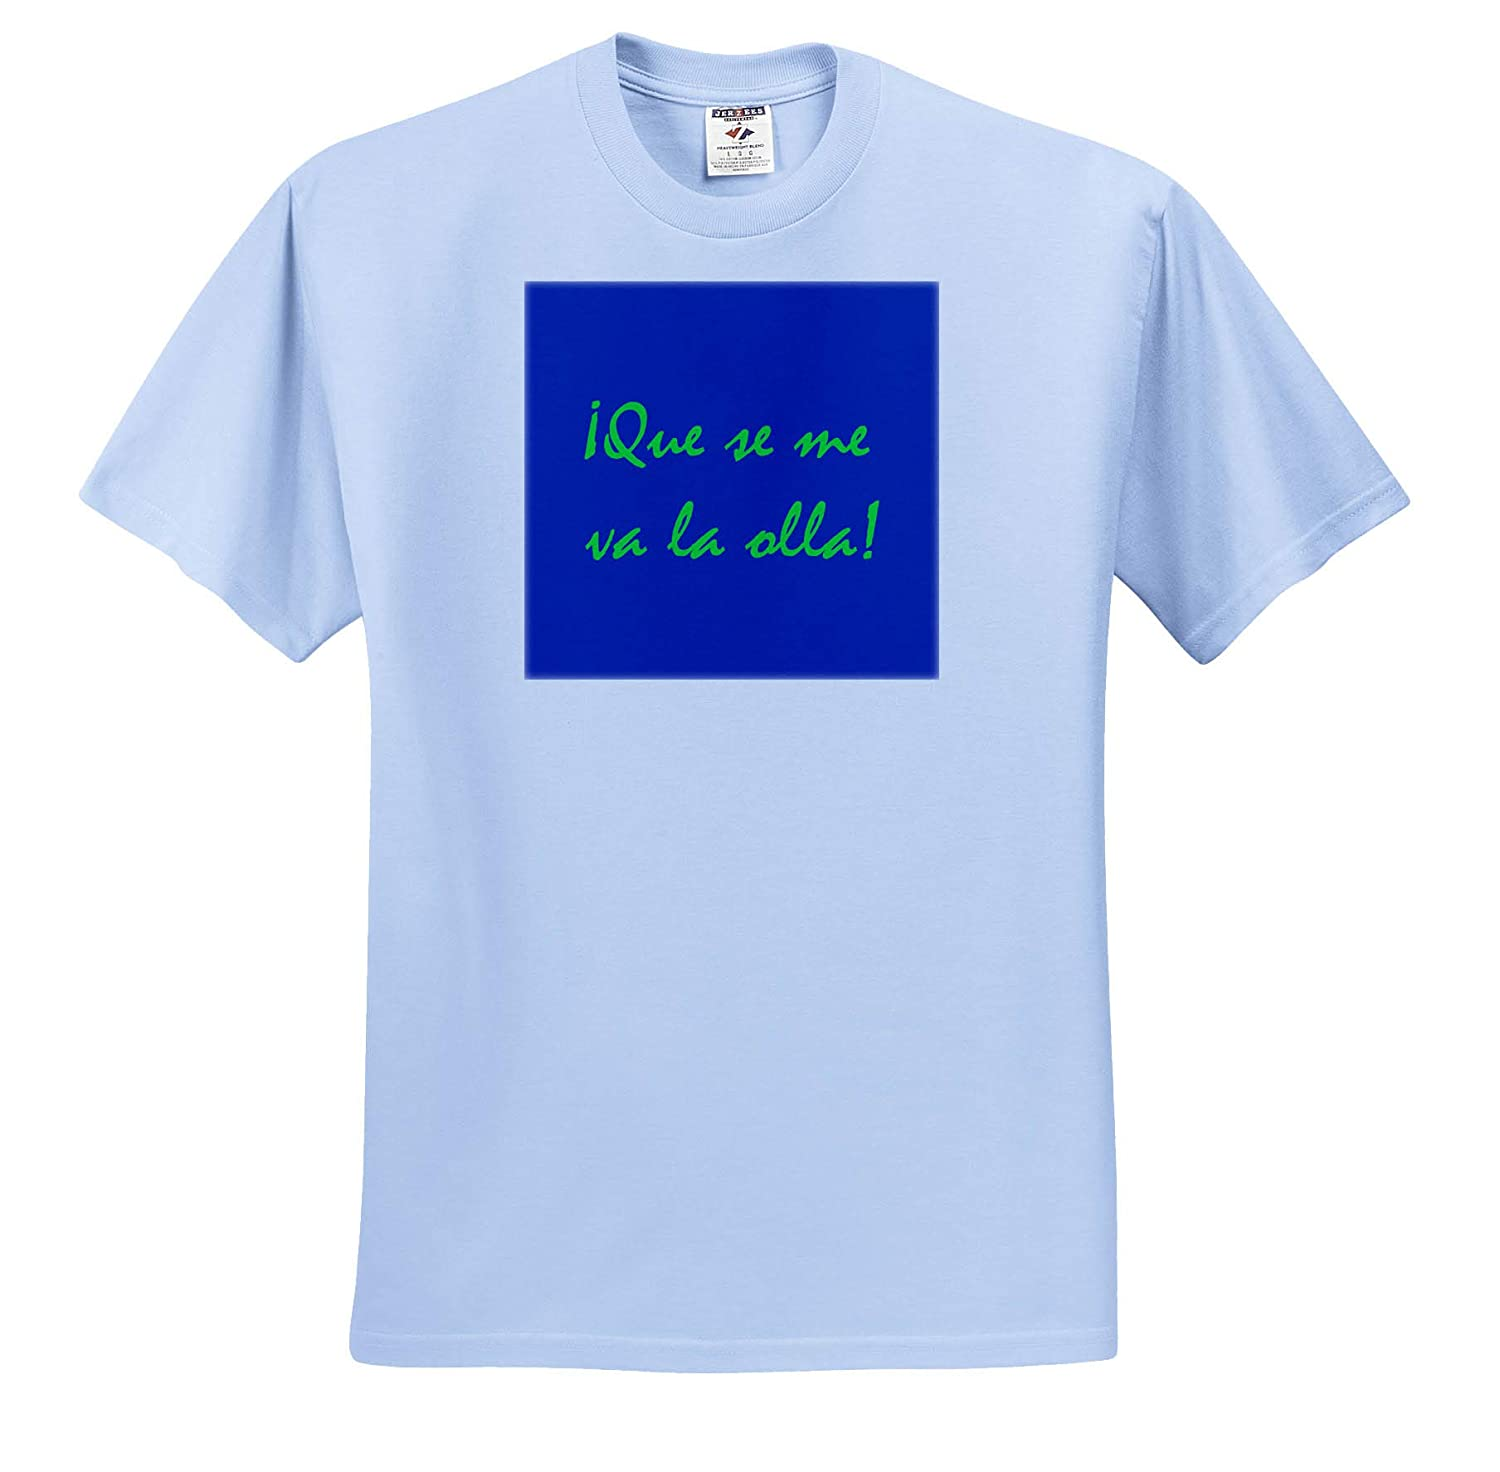 T-Shirts 3dRose Kike Calvo Folklore and Traditions Green Que se me va la olla with Blue Background